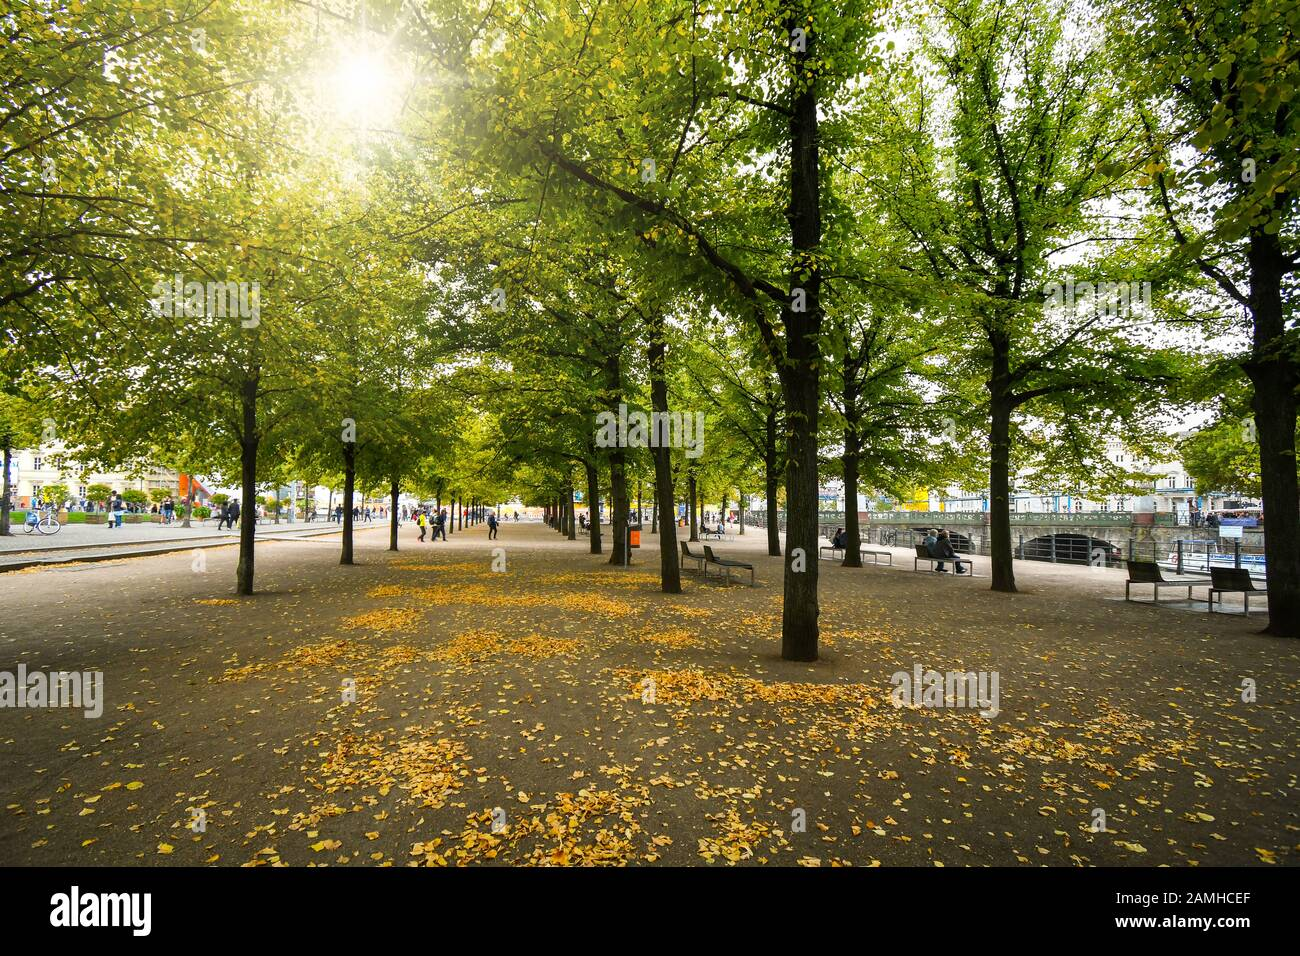 Tourists and local Germans relax under the shade of rows of trees at the Lustgarden park alongside the Spree River in autumn at Berlin Germany Stock Photo